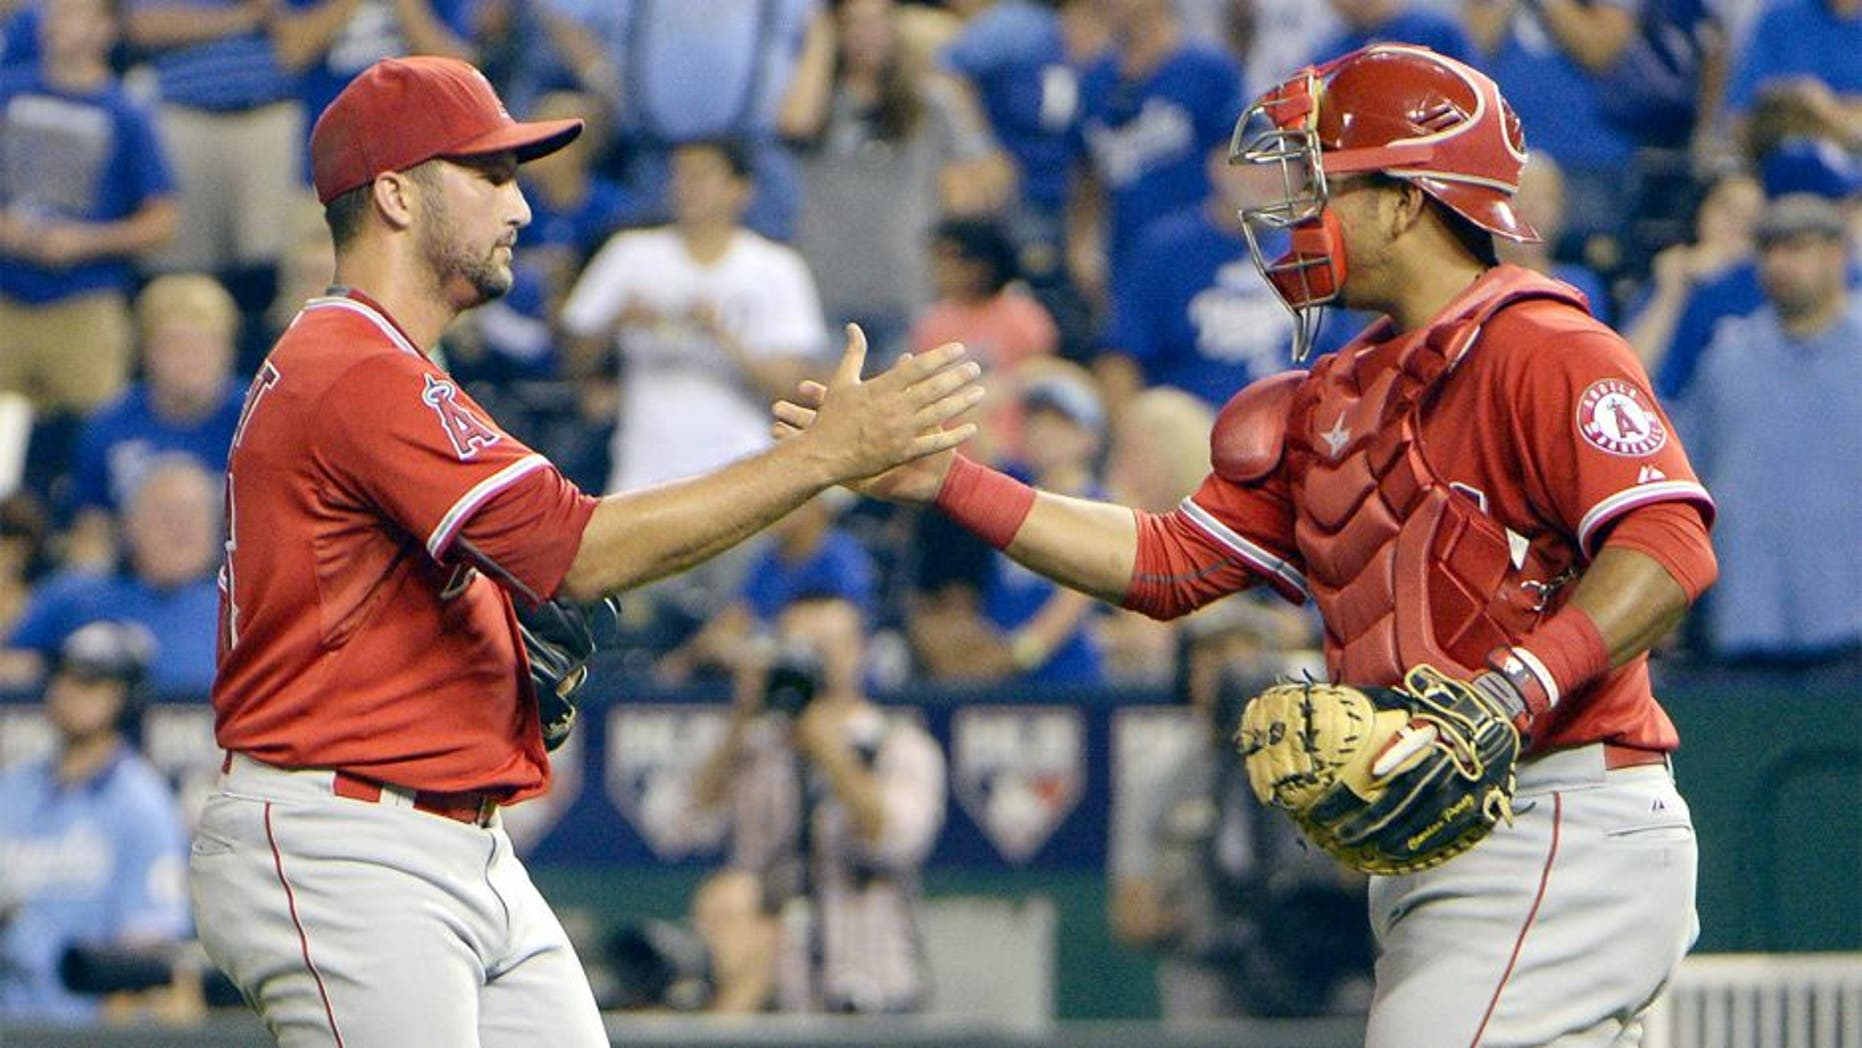 Aug 13, 2015; Kansas City, MO, USA; Los Angeles Angels relief pitcher Huston Street (16) celebrates with catcher Carlos Perez (58) after the game against the Kansas City Royals at Kauffman Stadium. The Angels won the game 7-6. Mandatory Credit: John Rieger-USA TODAY Sports